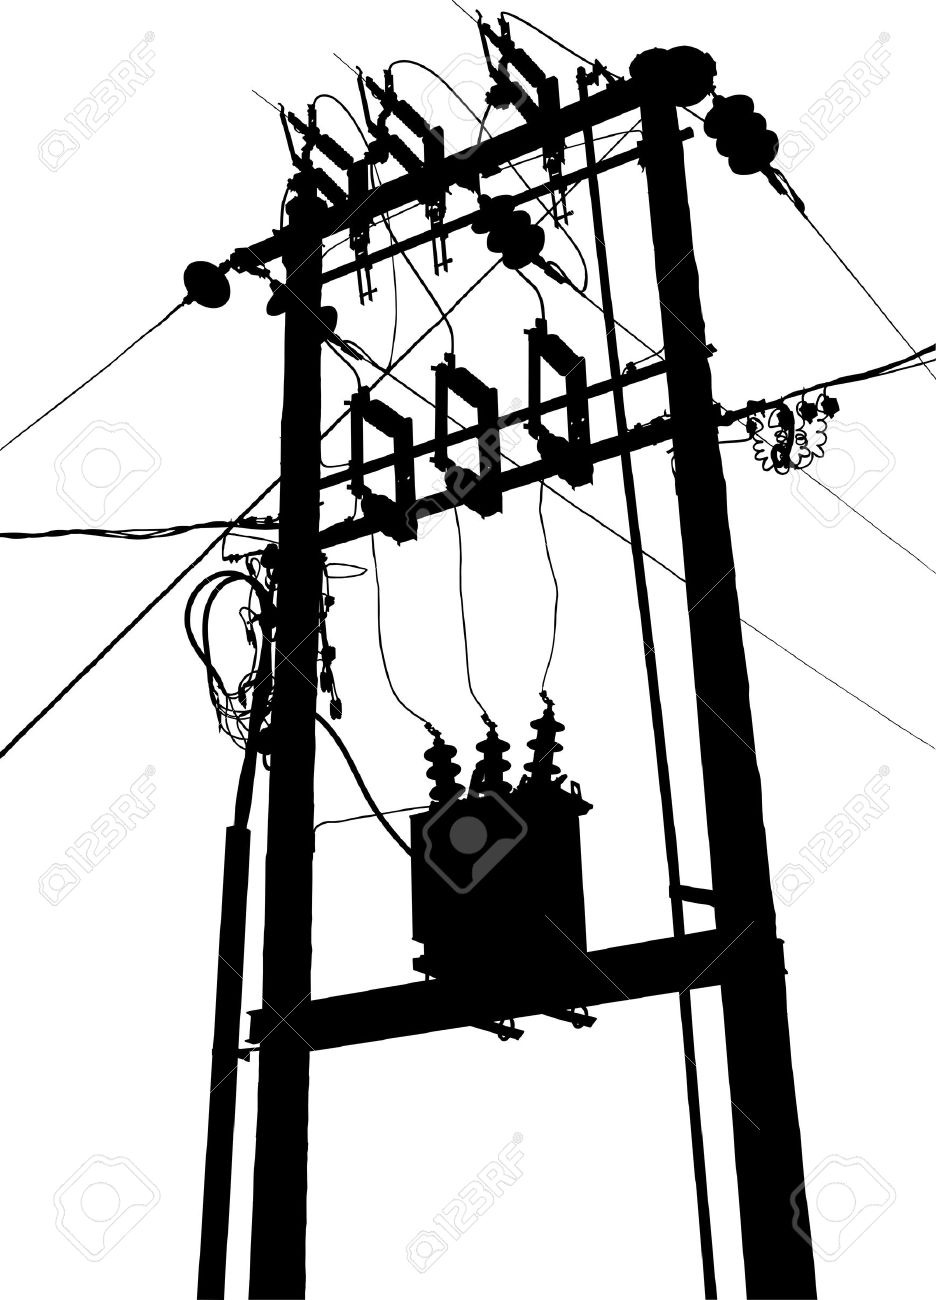 Vector silhouette of small electric transformer substation Stock Vector - 8109733